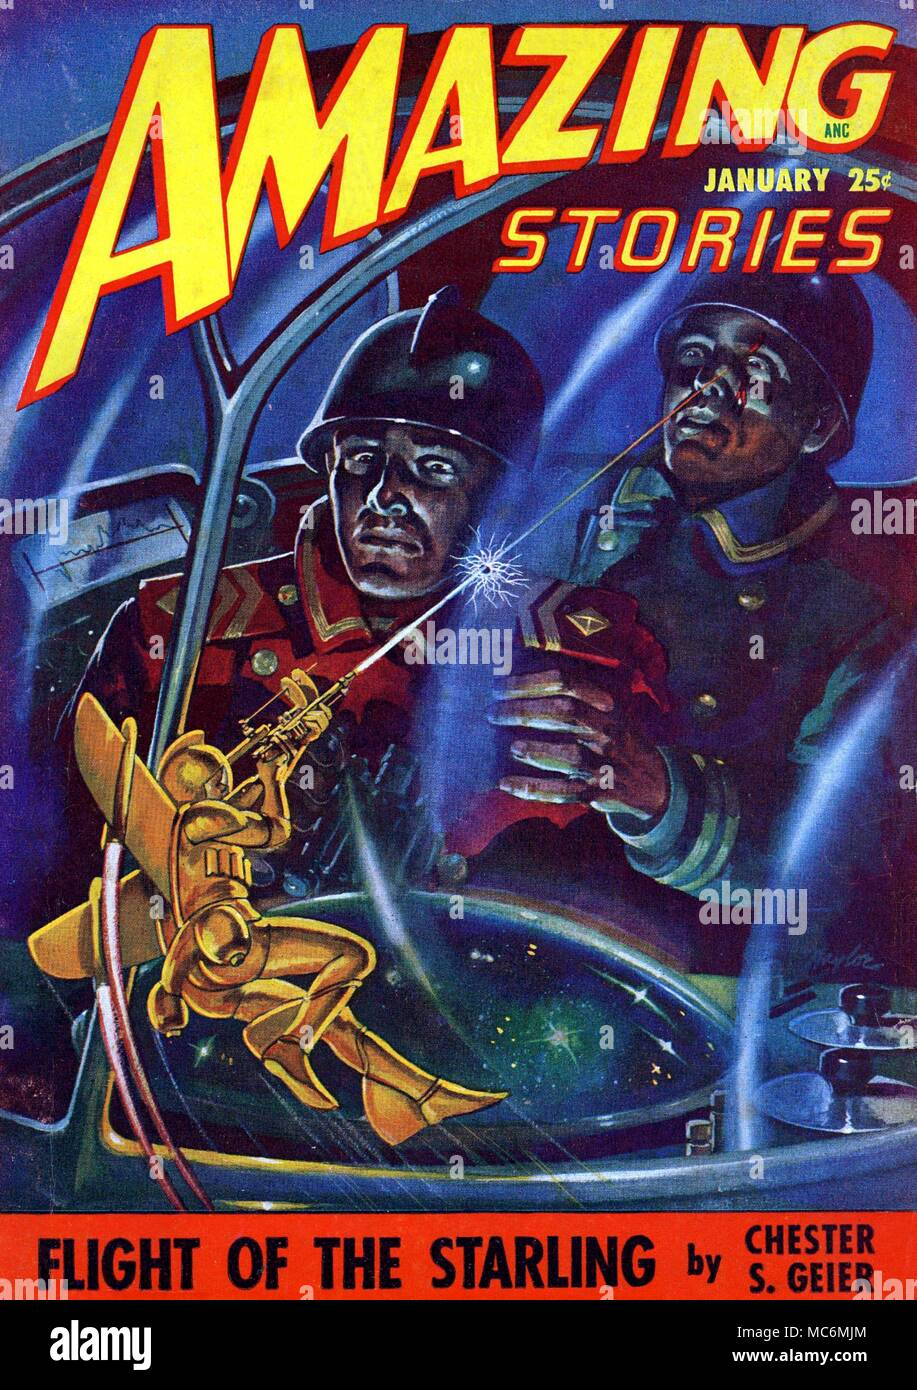 SPACE-MEN - FANTASY Cover artwork by Raymond Naylor for Amazing Stories, Vol. 22, No. 1, January 1948.  The picture is intended to illustrate Chester Geier's story, Flight of the Starlings. Rocket propelled space-man shoots at giant soldiers in space-craft dome. Stock Photo